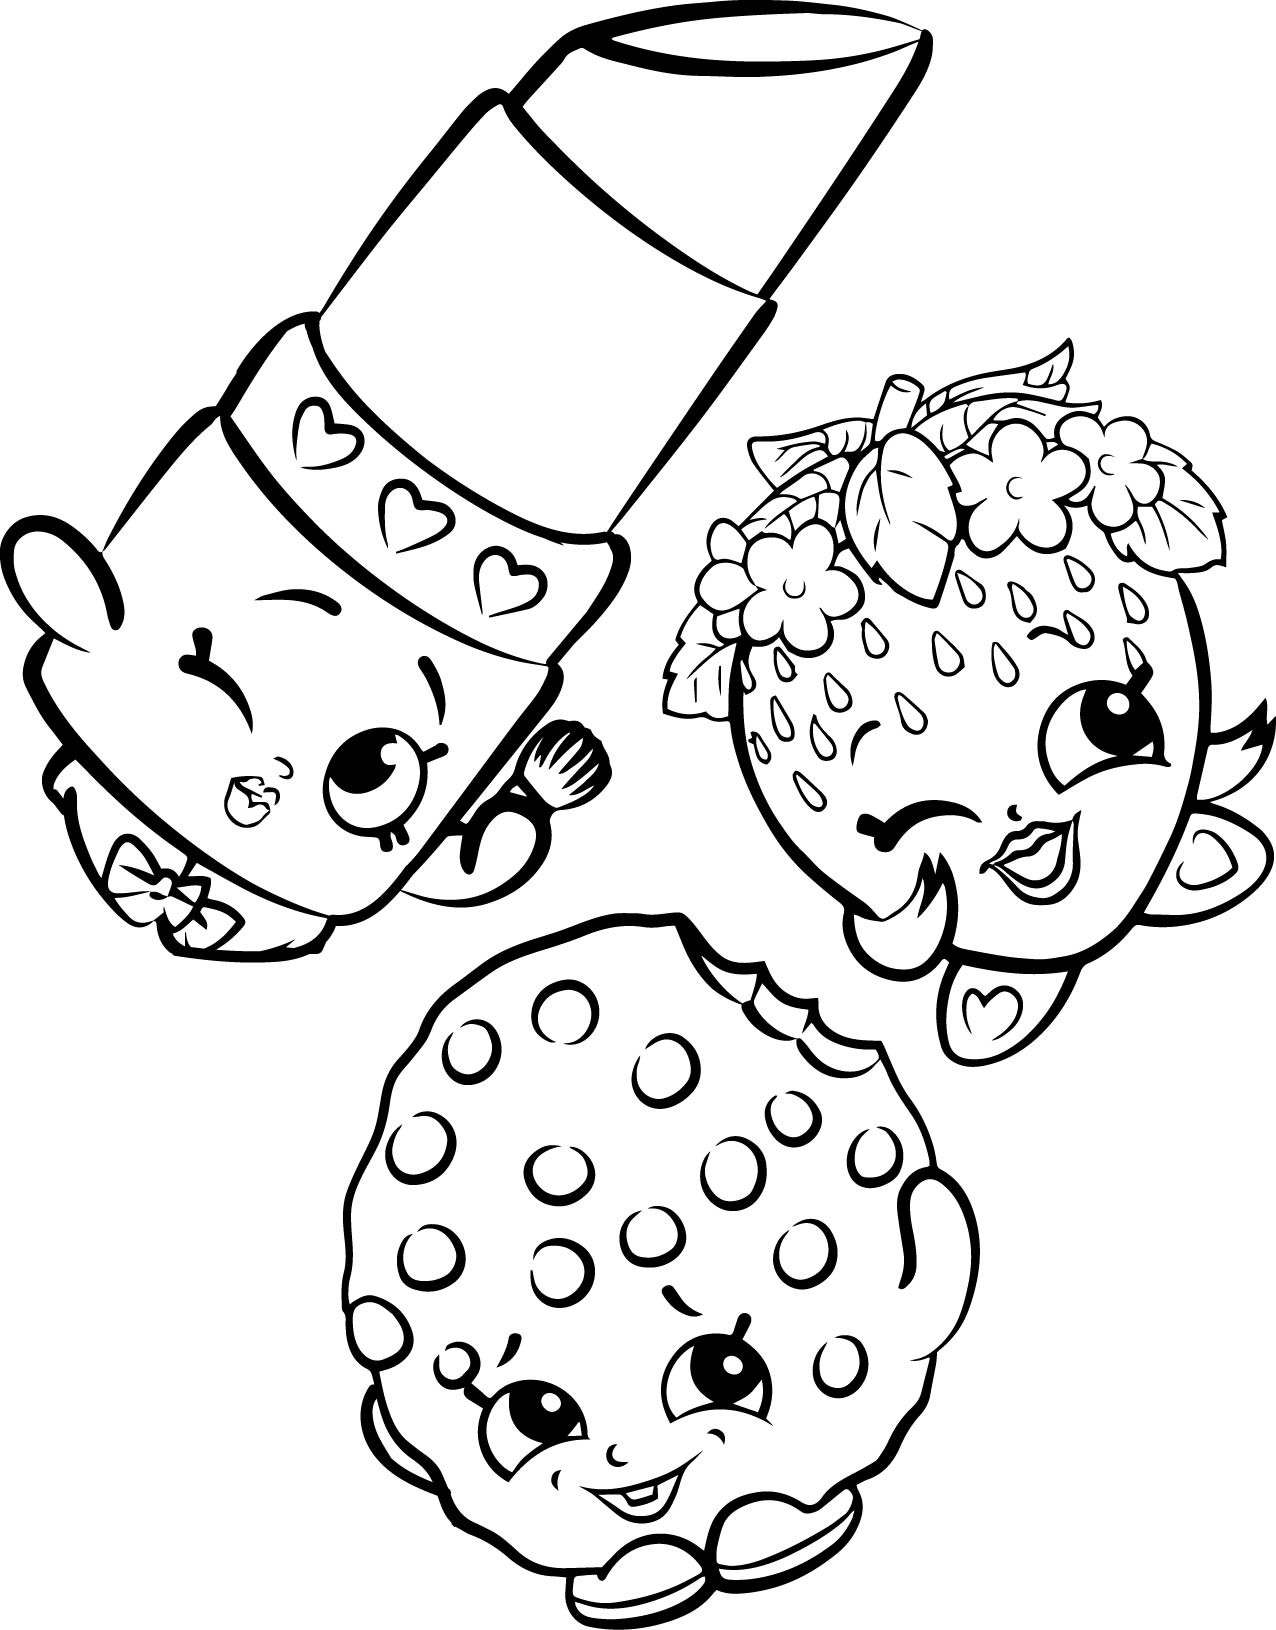 1276x1630 Shopkins Coloring Pages To Print Free Awesome Free Shopkins